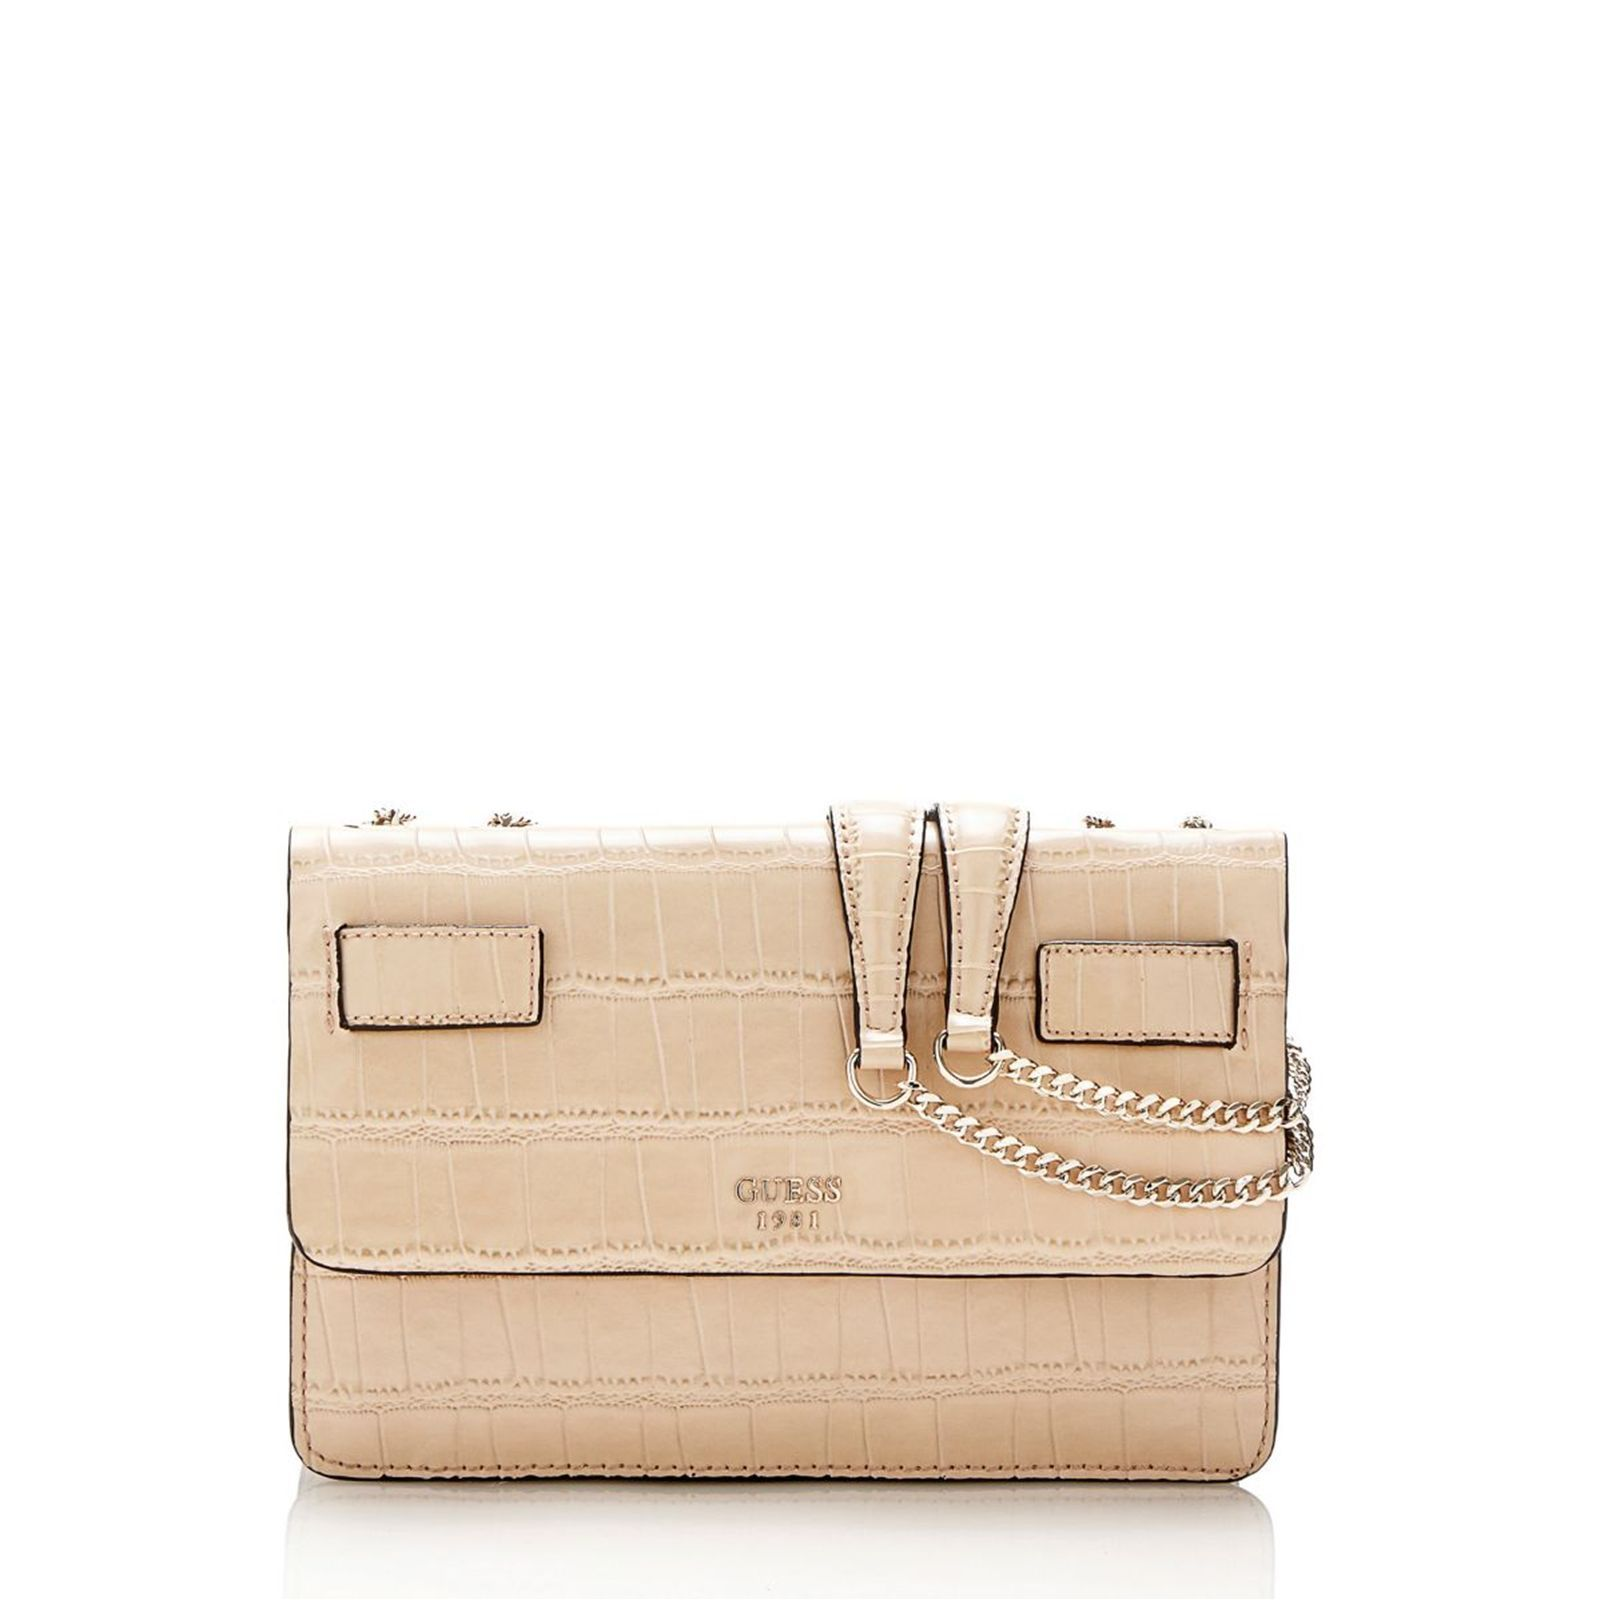 sac guess bandouliere beige